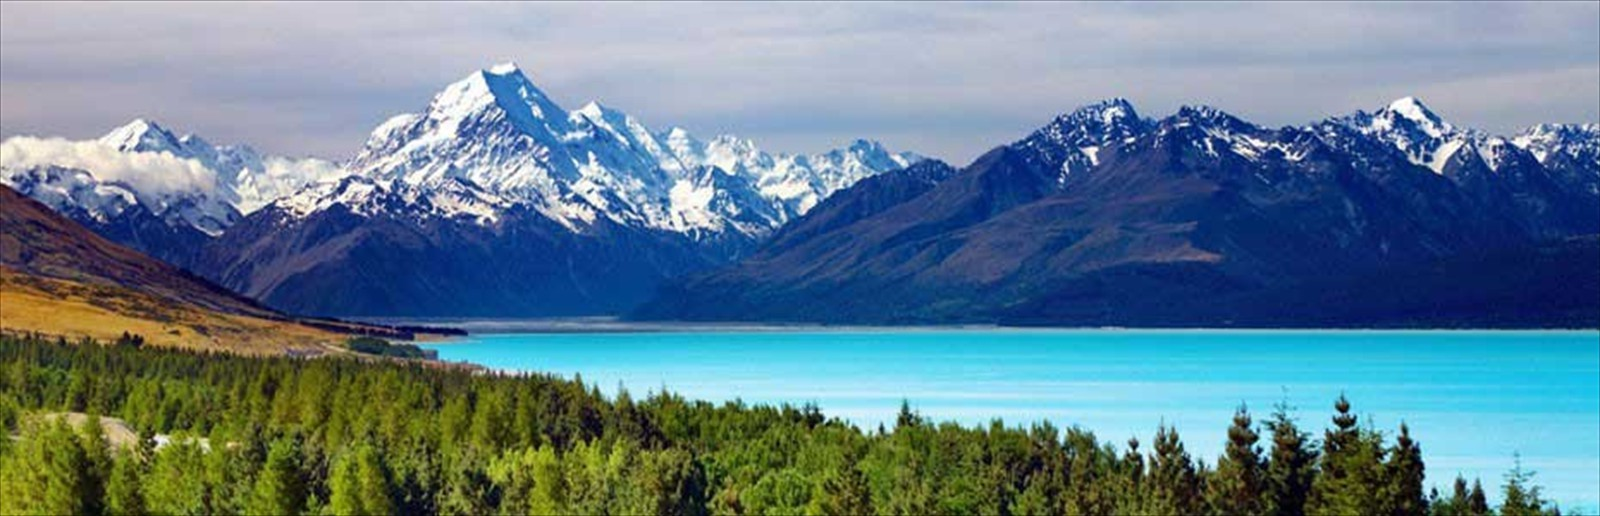 Custom Travel for You - Mt. Cook, New Zealand